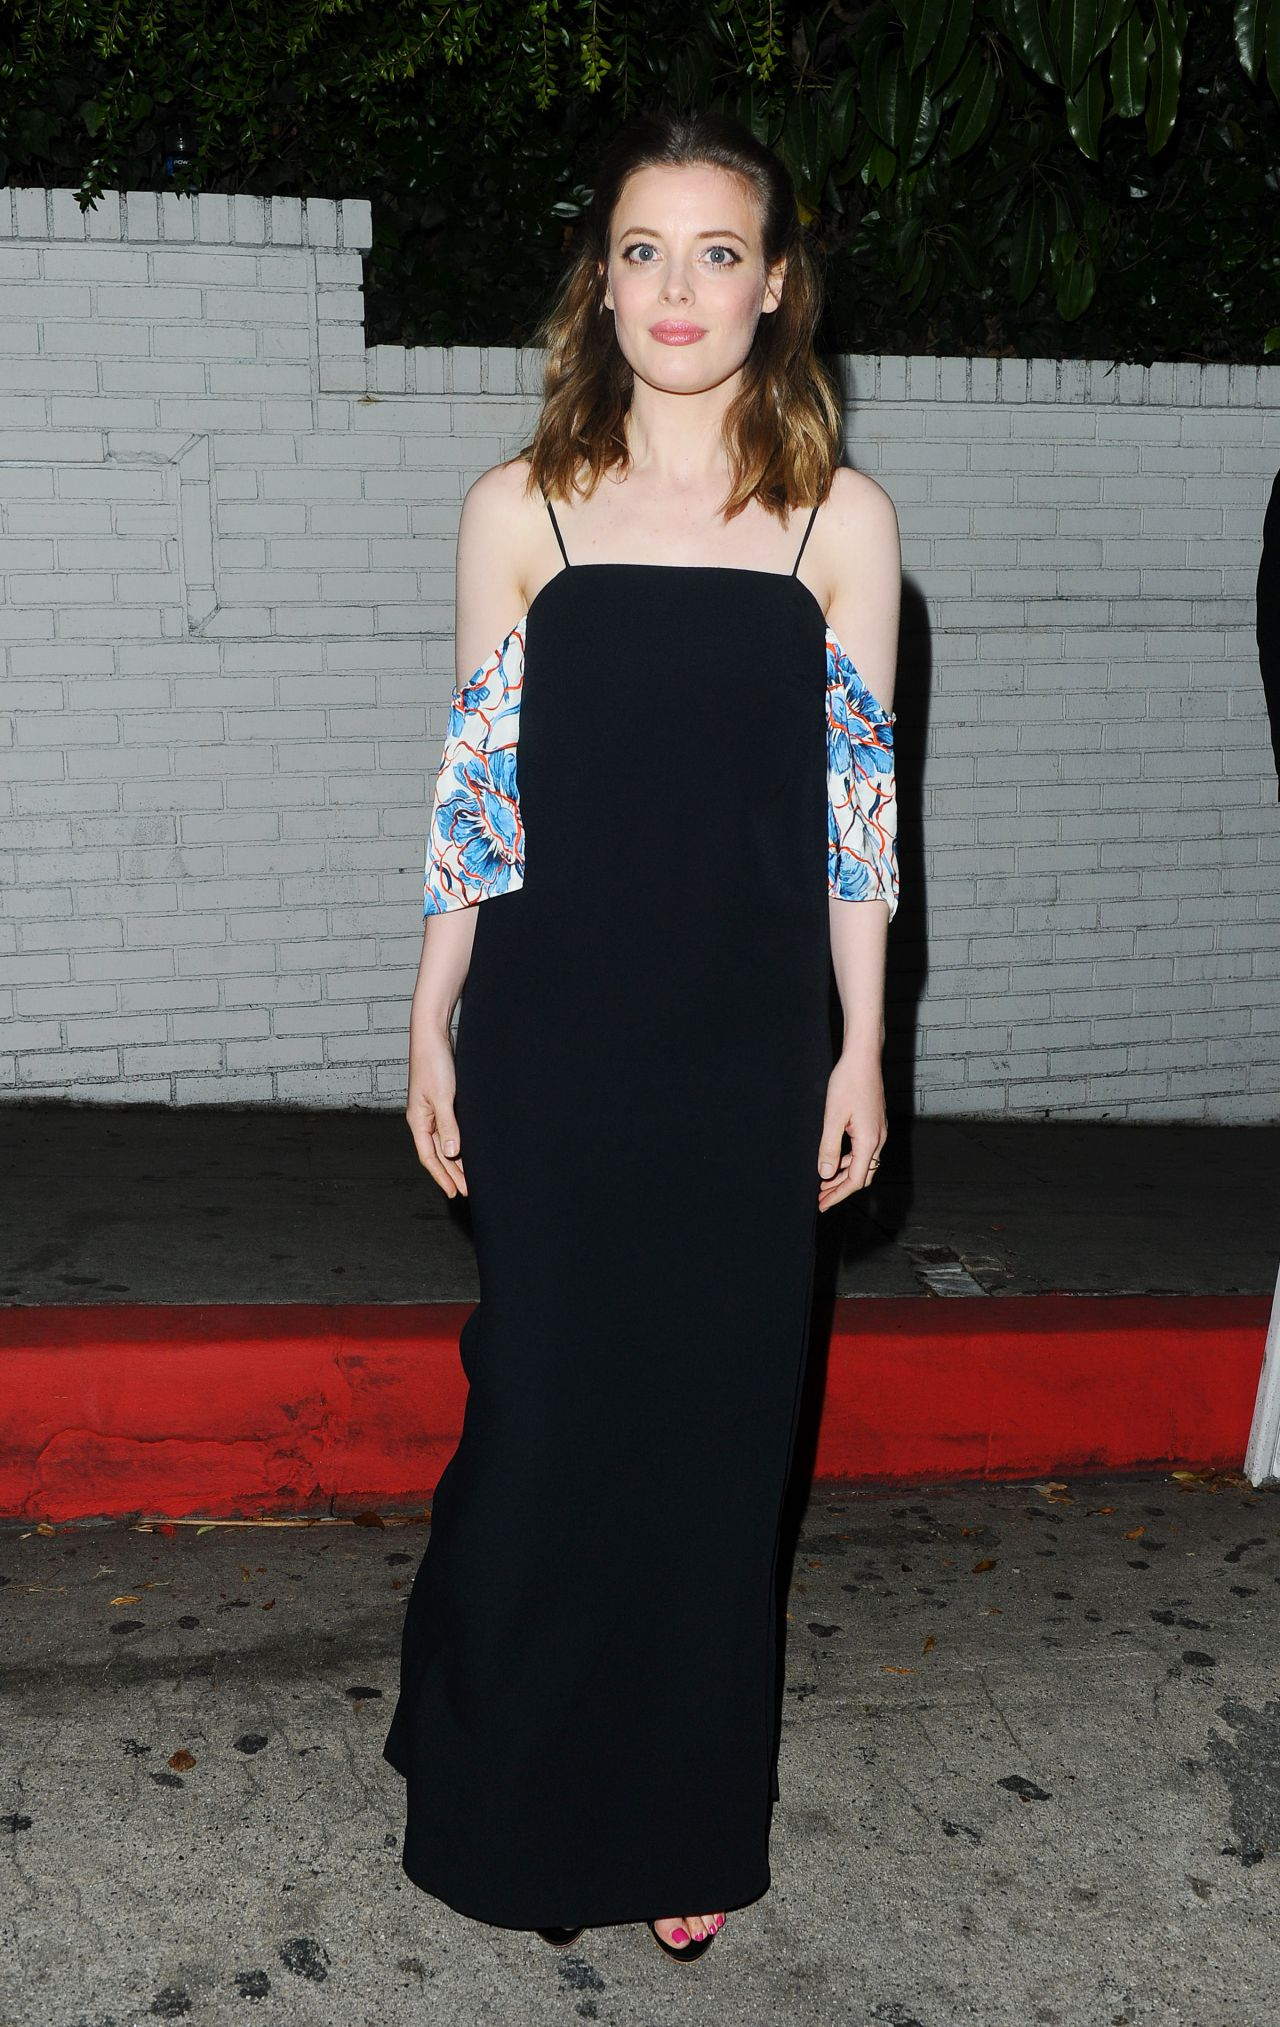 gillian-jacobs-w-magazine-s-2016-golden-globes-party-in-los-angeles-1